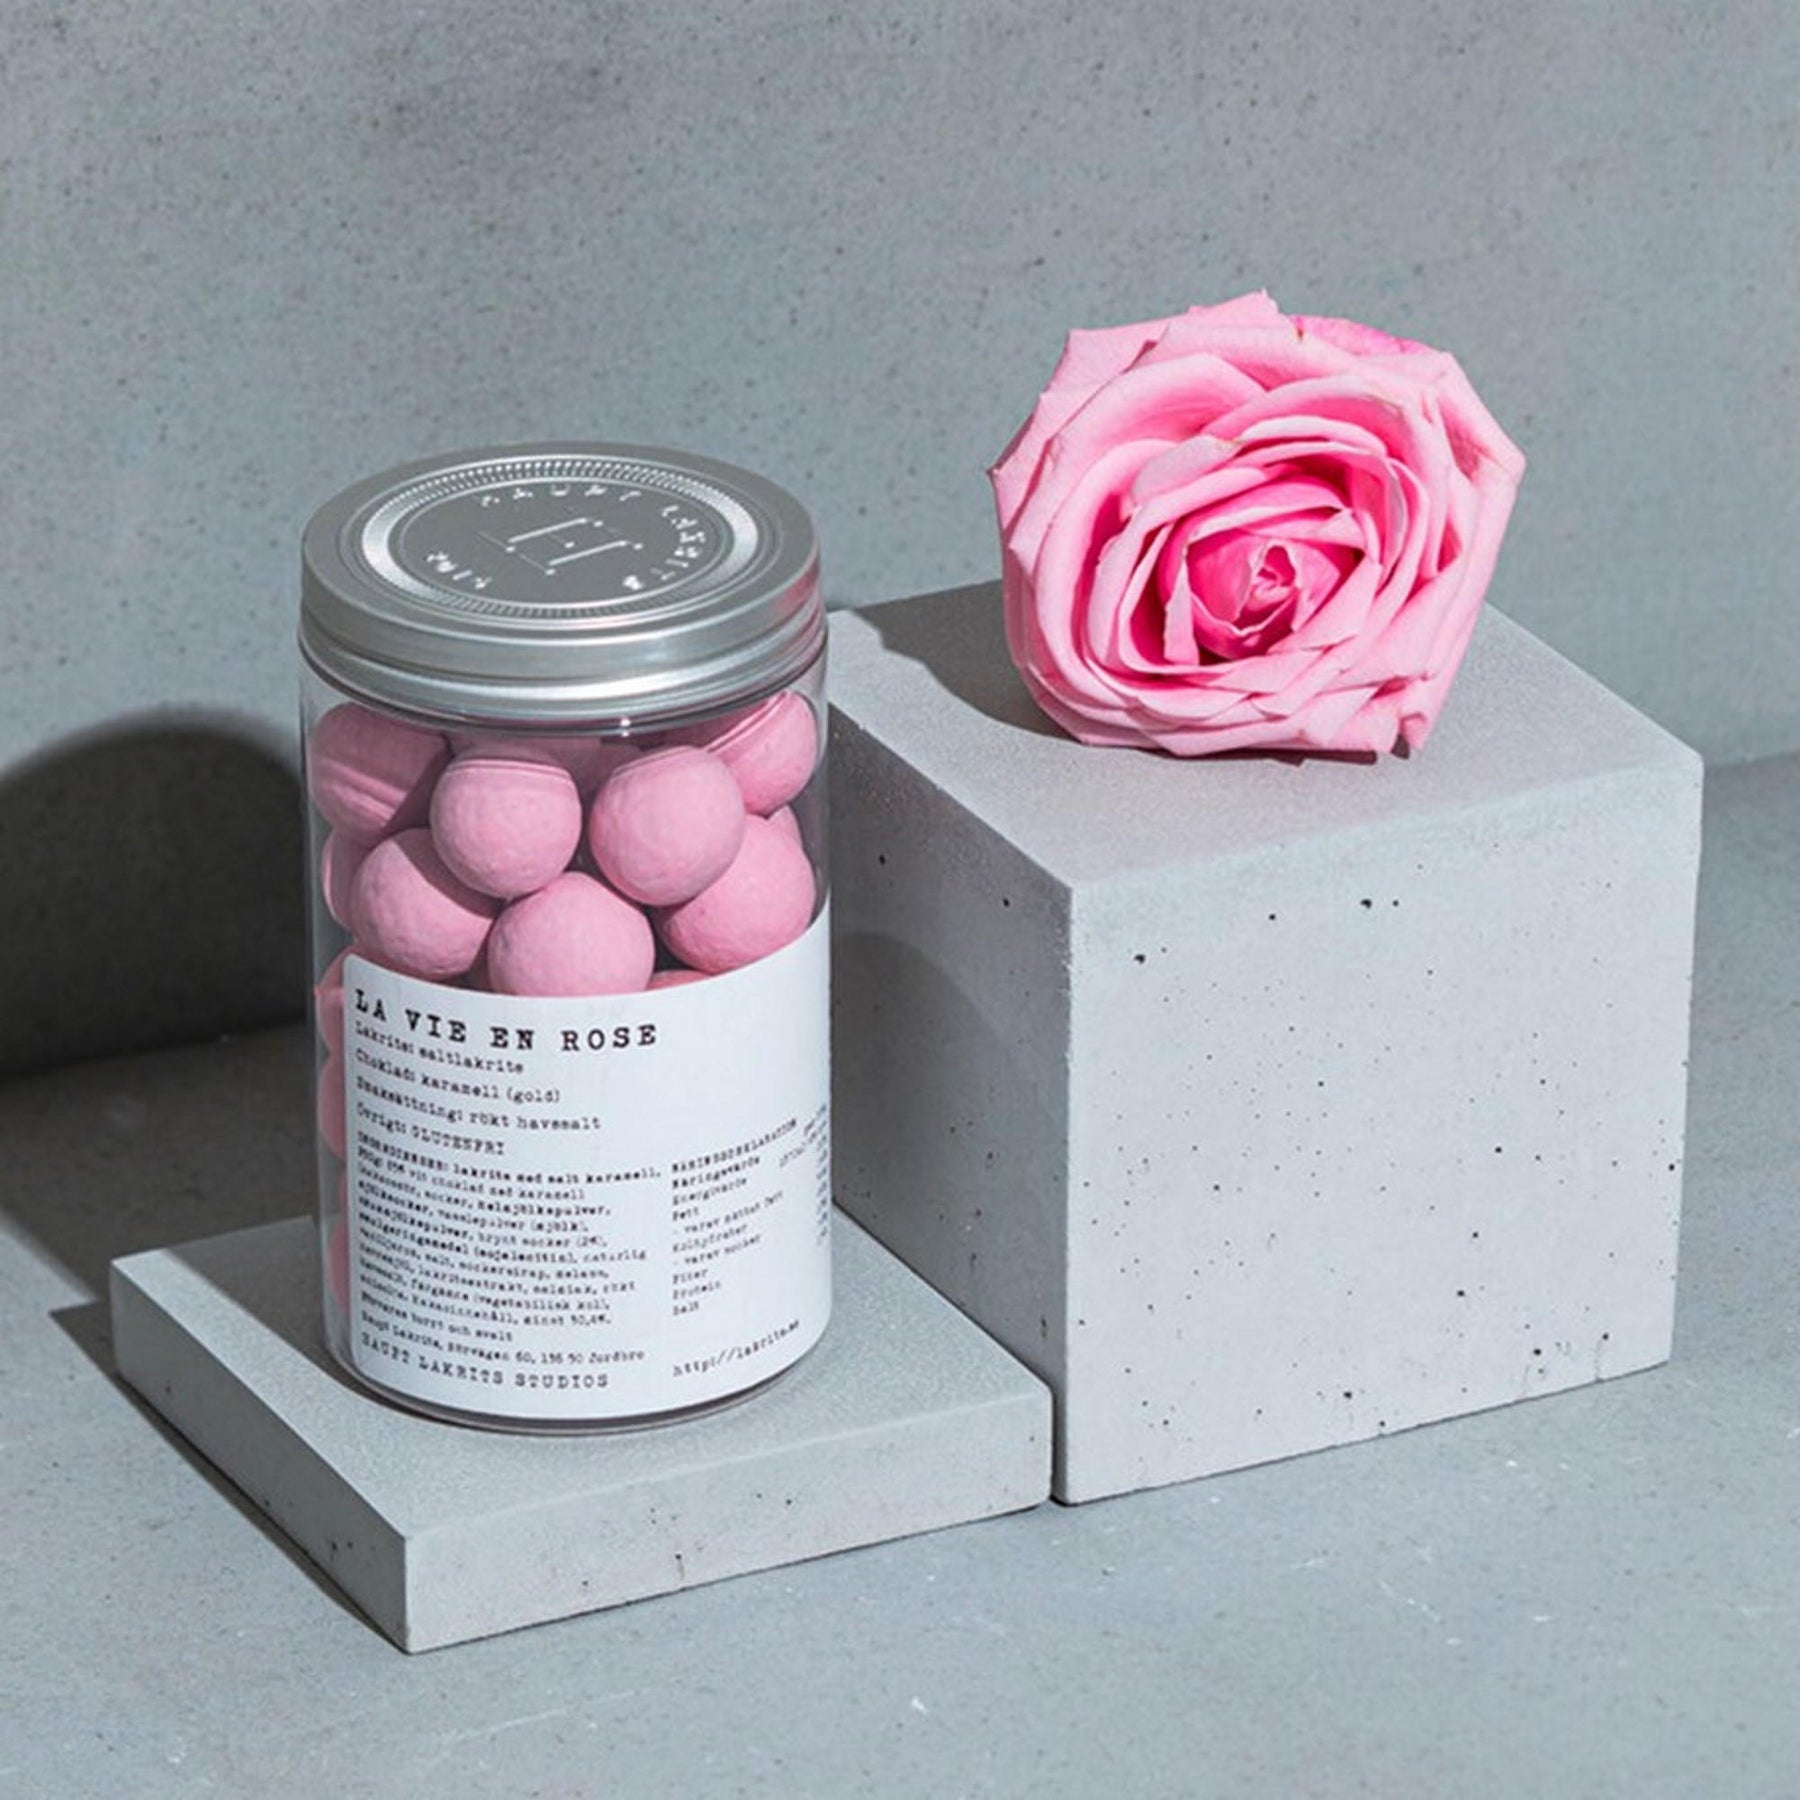 La Vie en Rose - Rose flavoured artisan Chocolate coated liquorice